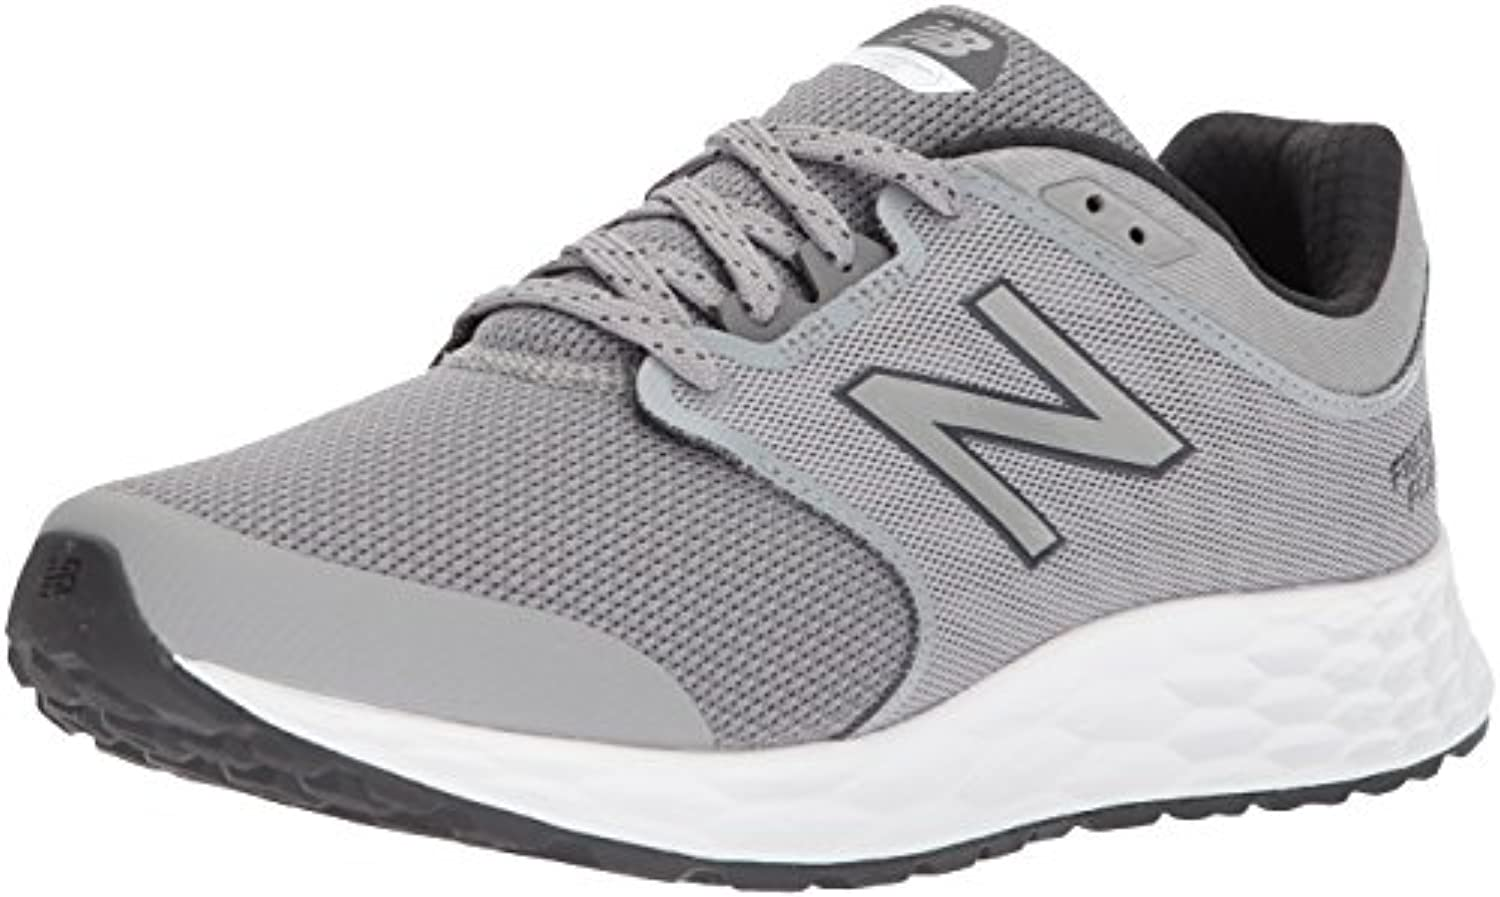 New Balance Men's 1165v1 Fresh Foam Walking Shoe  Grey/Black  9 2E US